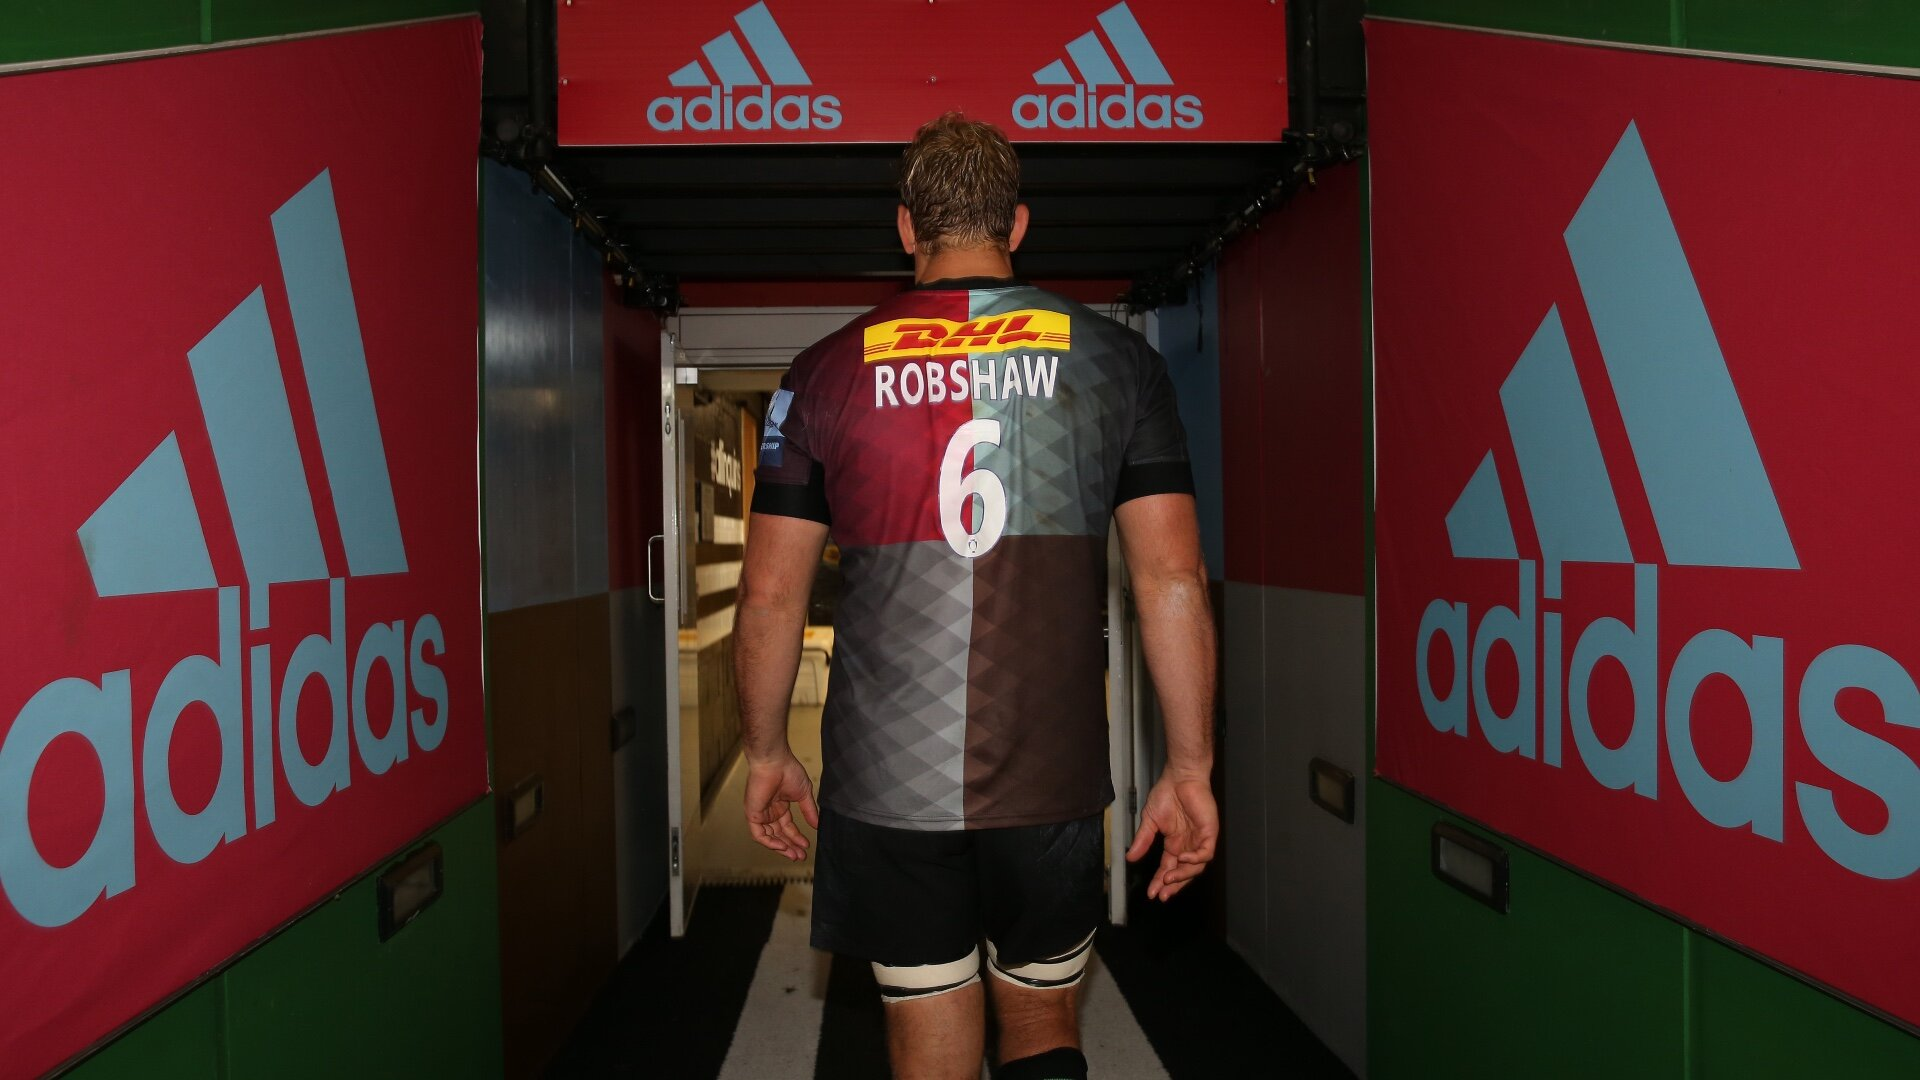 'We have had some incredible moments' - Chris Robshaw pens emotional open letter to fans